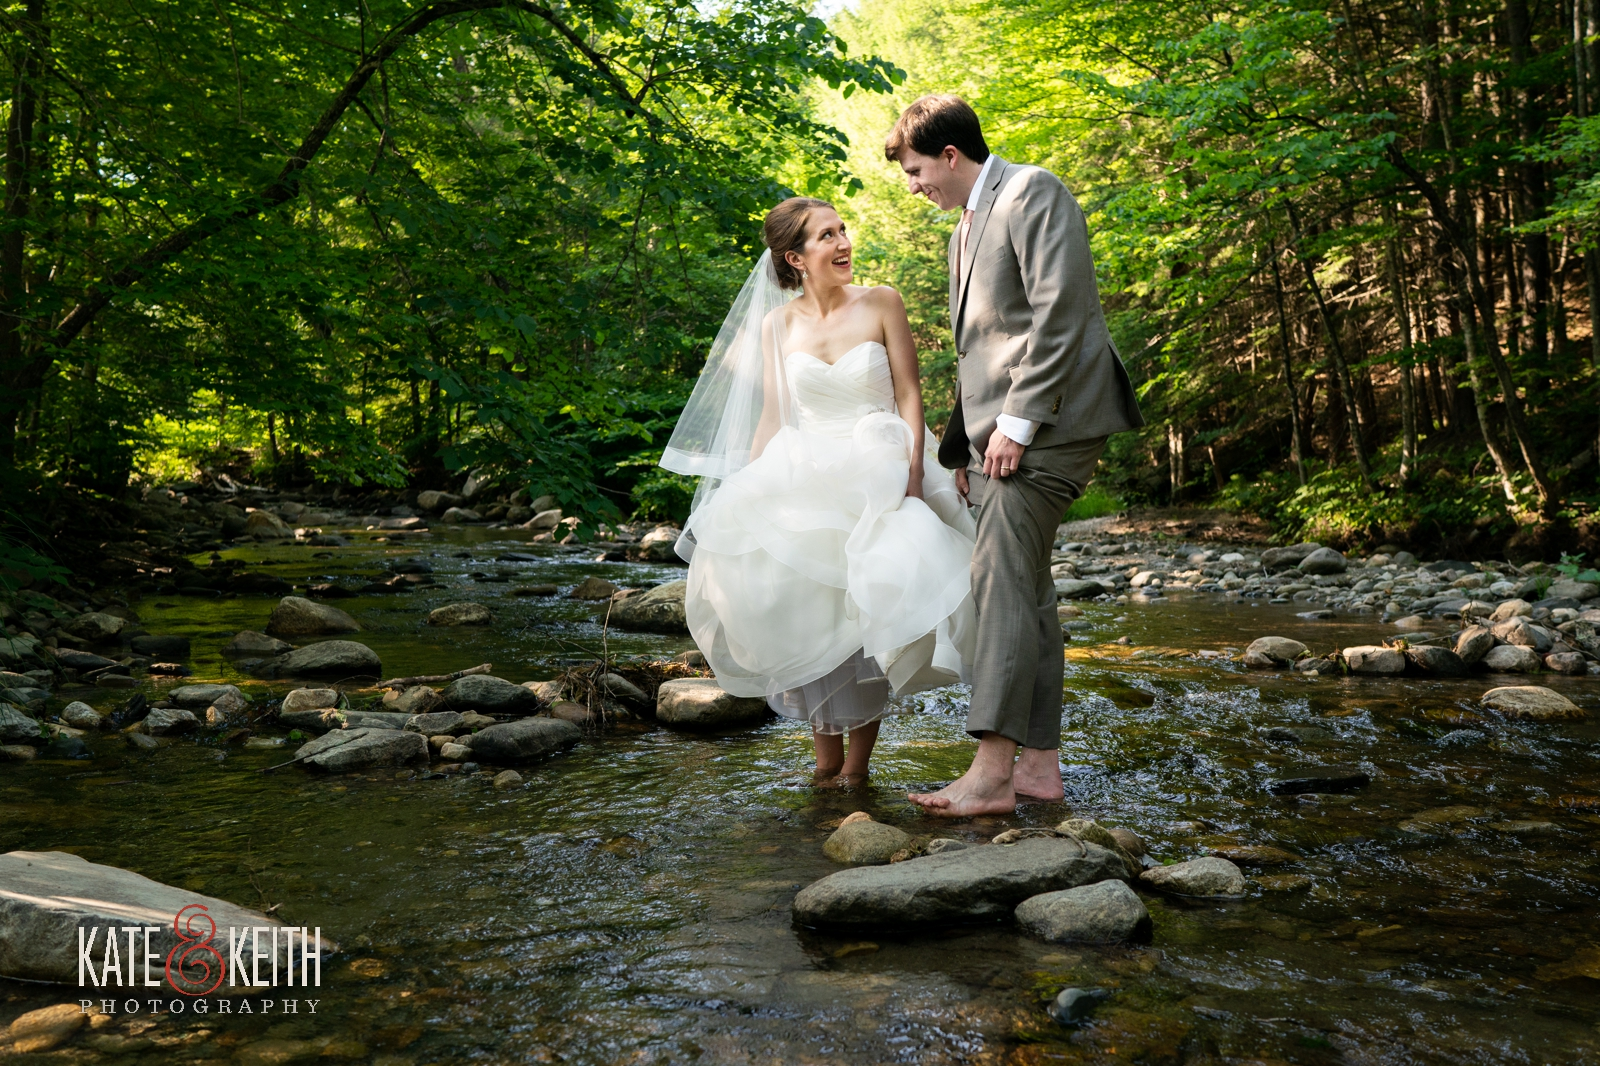 bride and groom fun barefoot wedding photos in stream Vermont